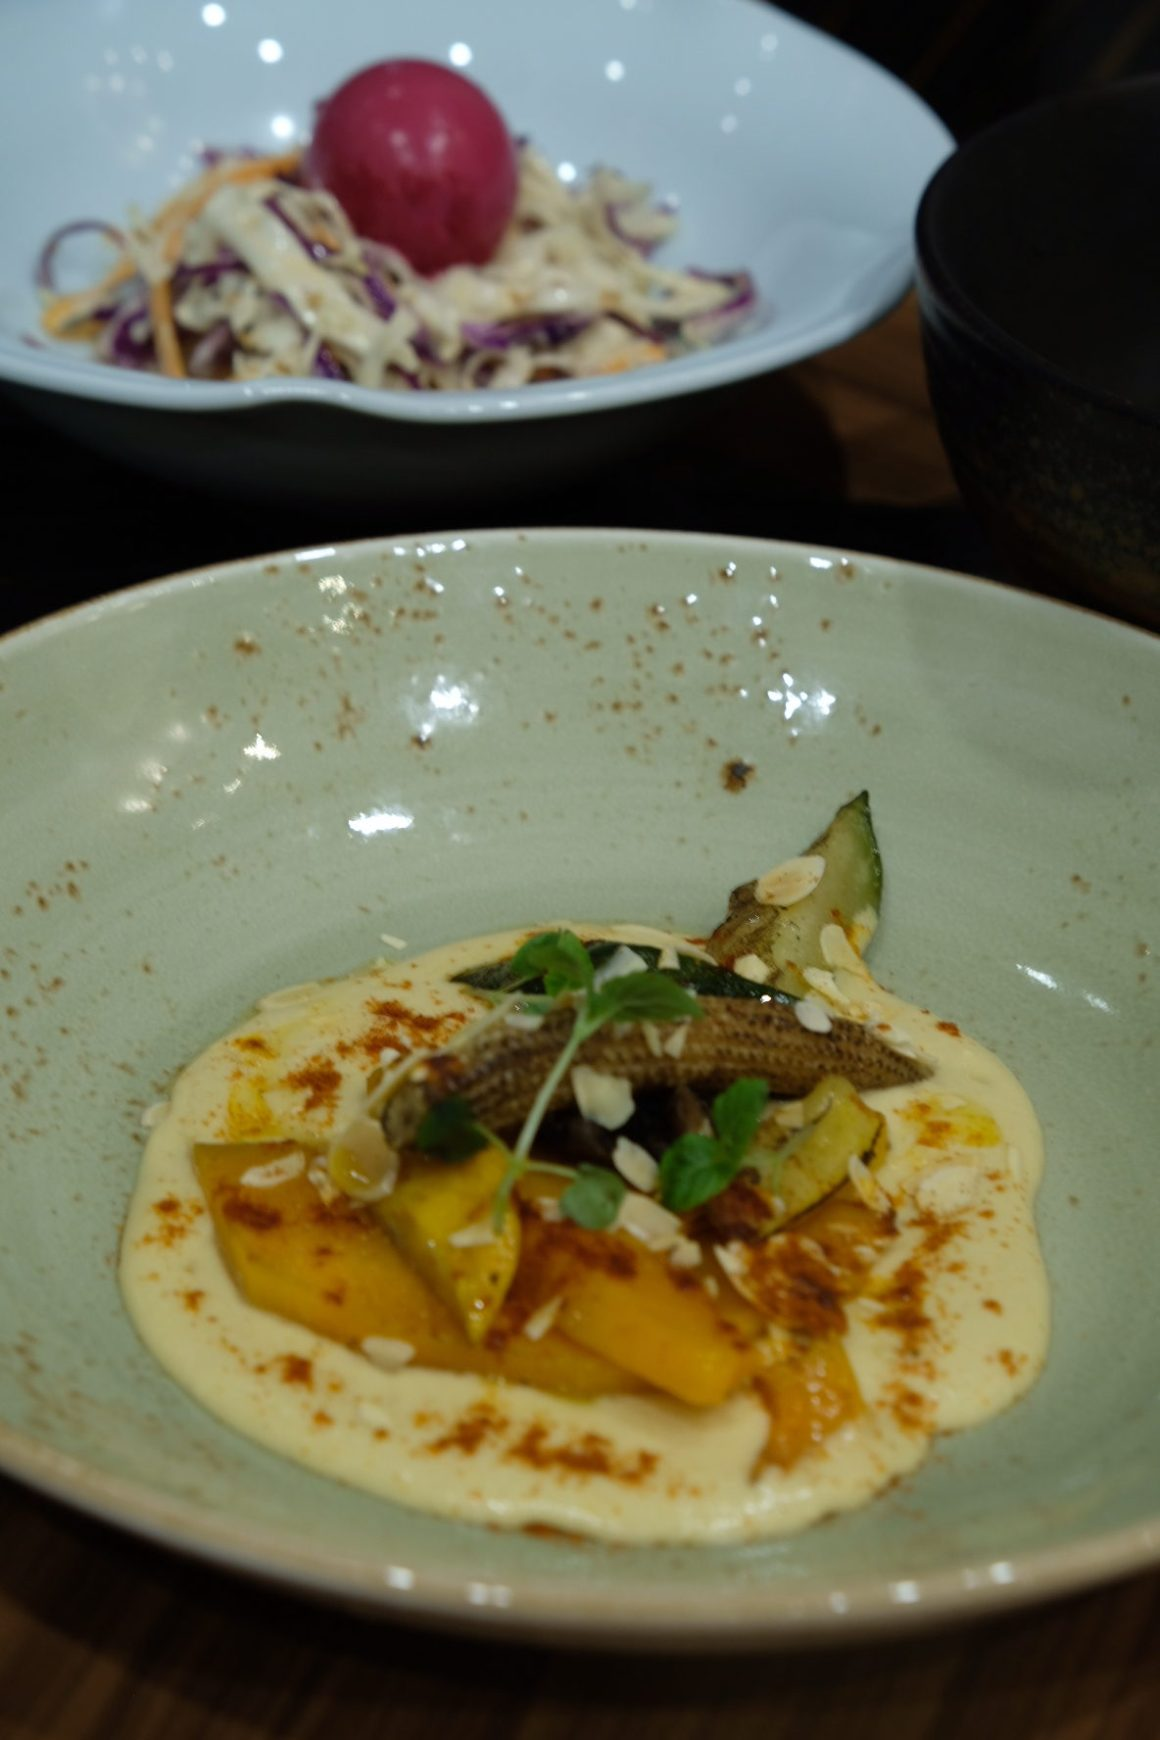 Porta Revamped Ala Carte Menu - Grilled Summer Vegetables with Hummus ($14)